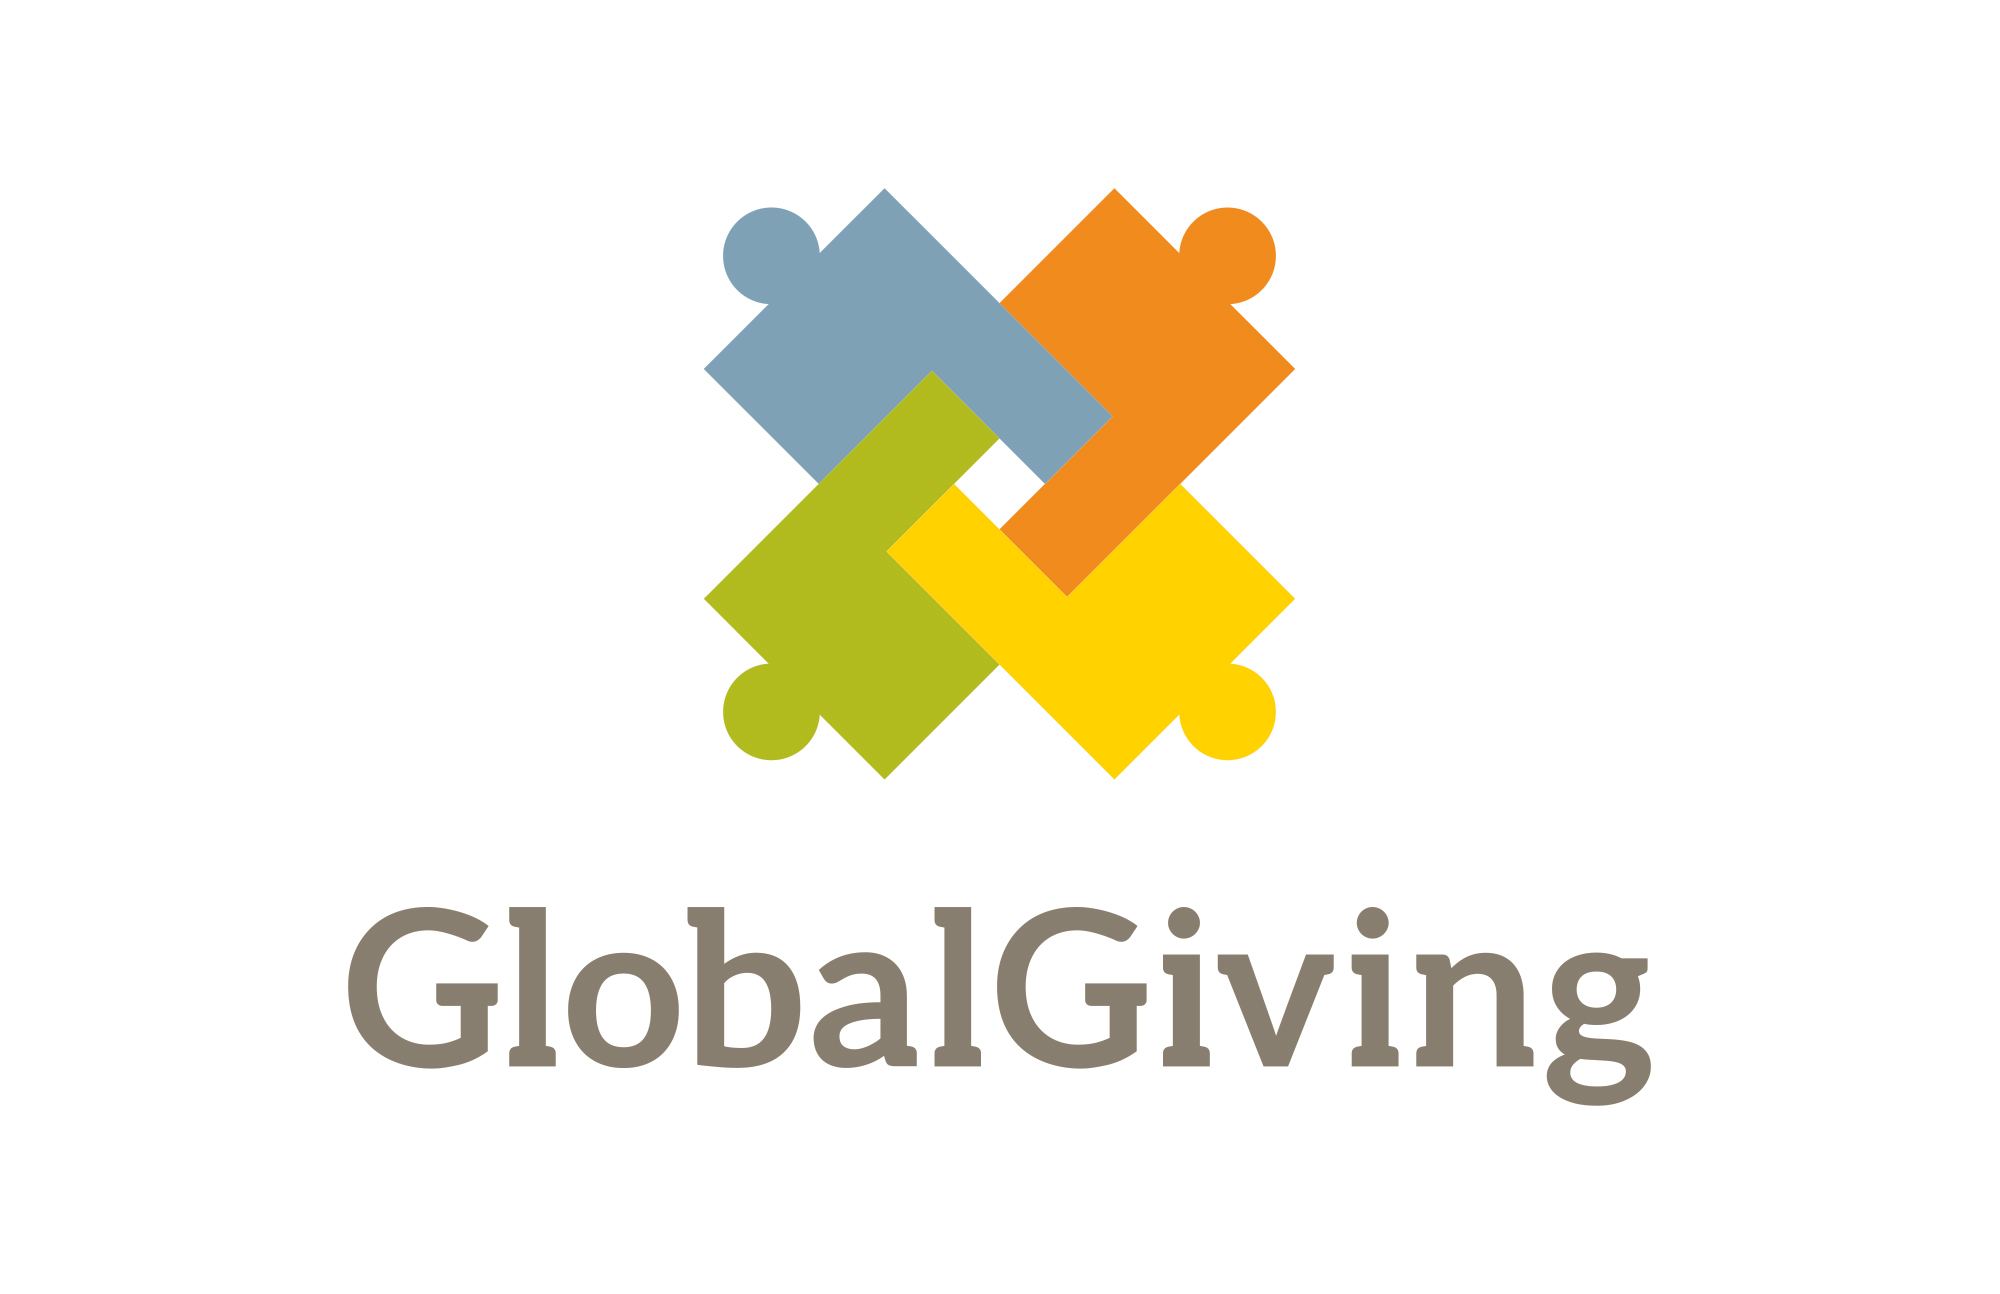 Global Giving